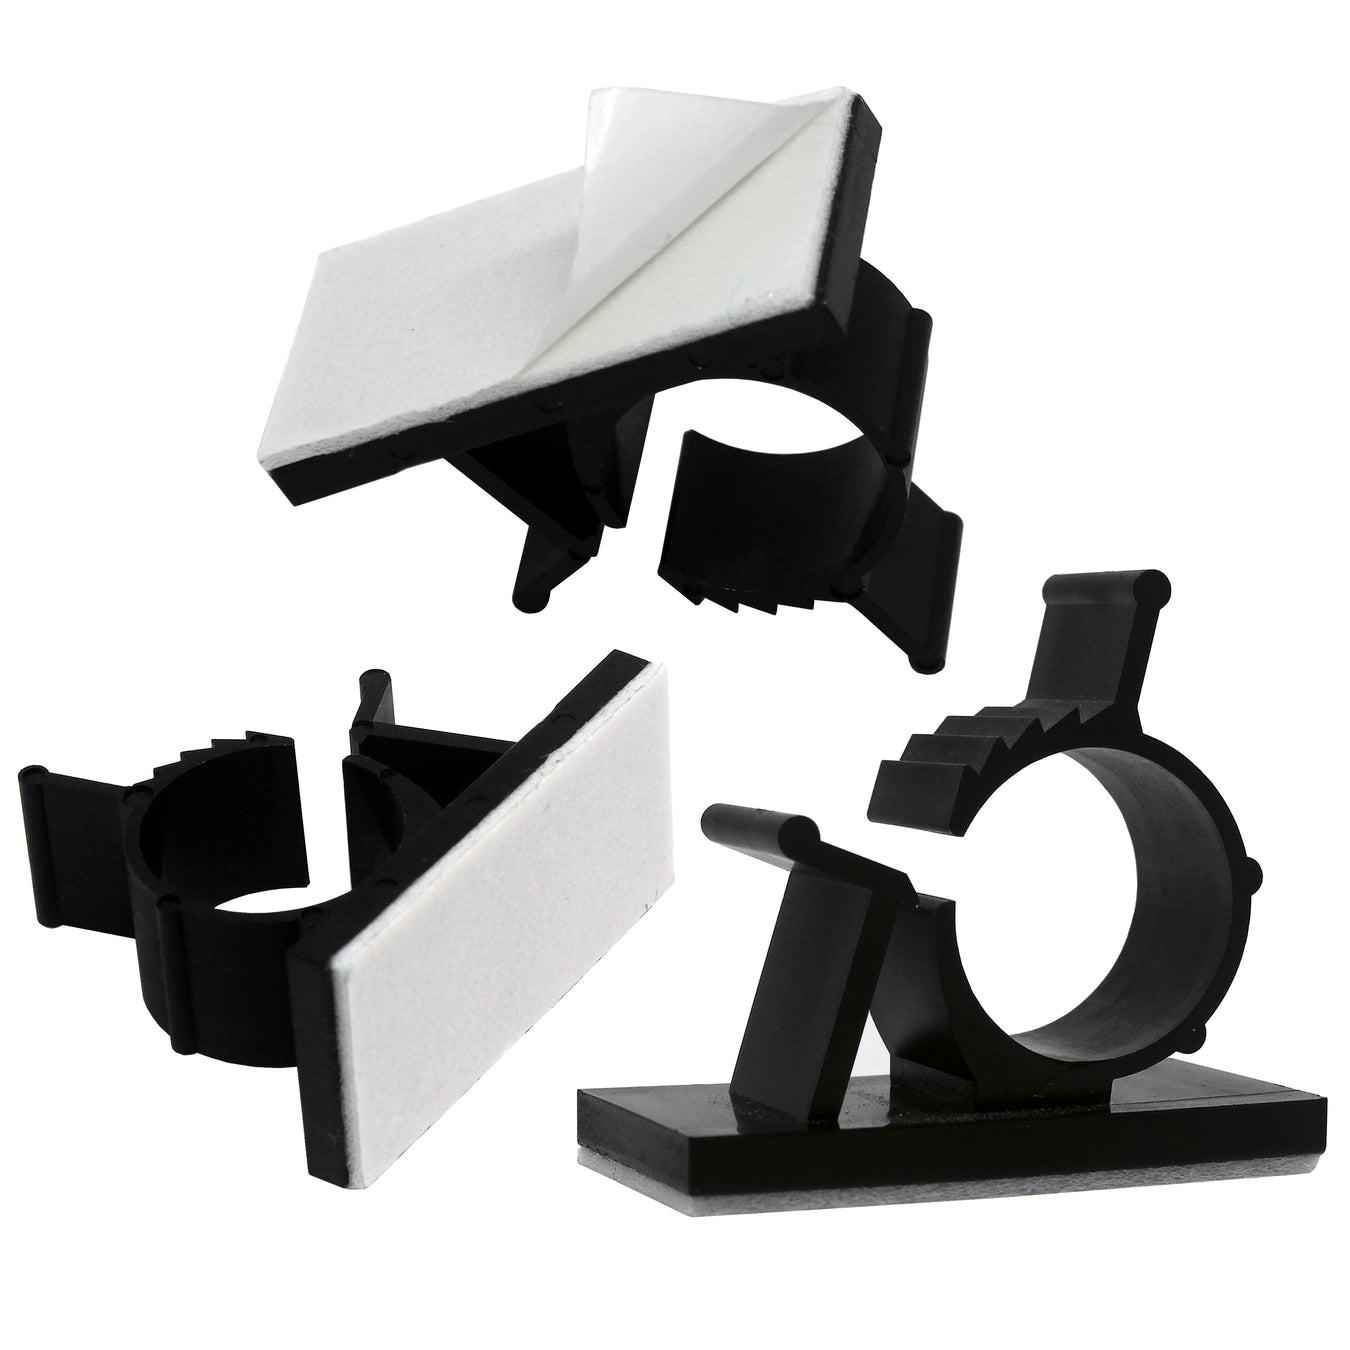 Self-Adhesive Adjustable Cable Clamps